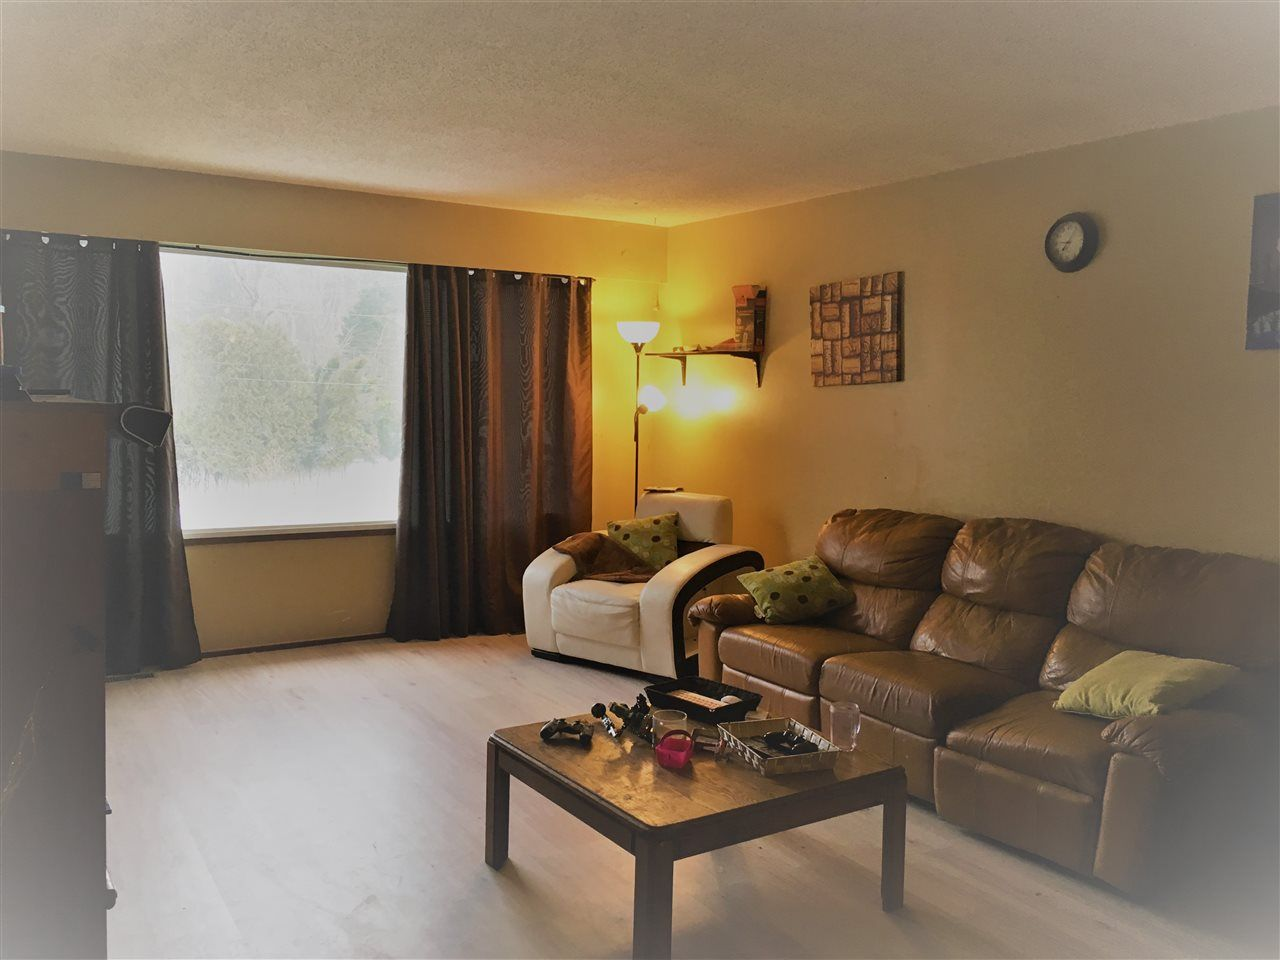 Photo 4: Photos: 3088 - 3090 PRINCESS Street in Abbotsford: Abbotsford West House Duplex for sale : MLS® # R2244539